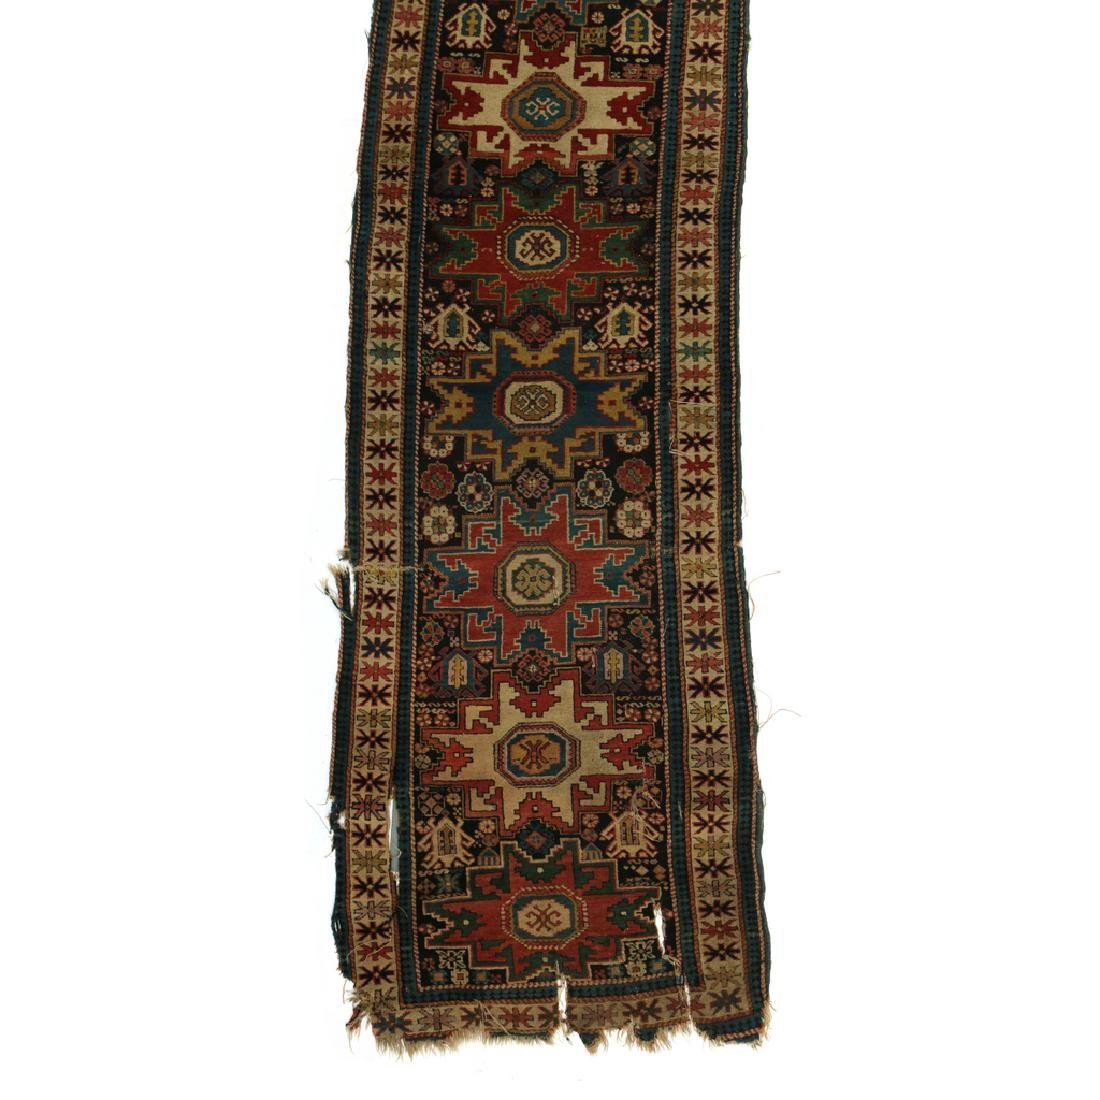 LESGHI-STAR LONG RUG - 3